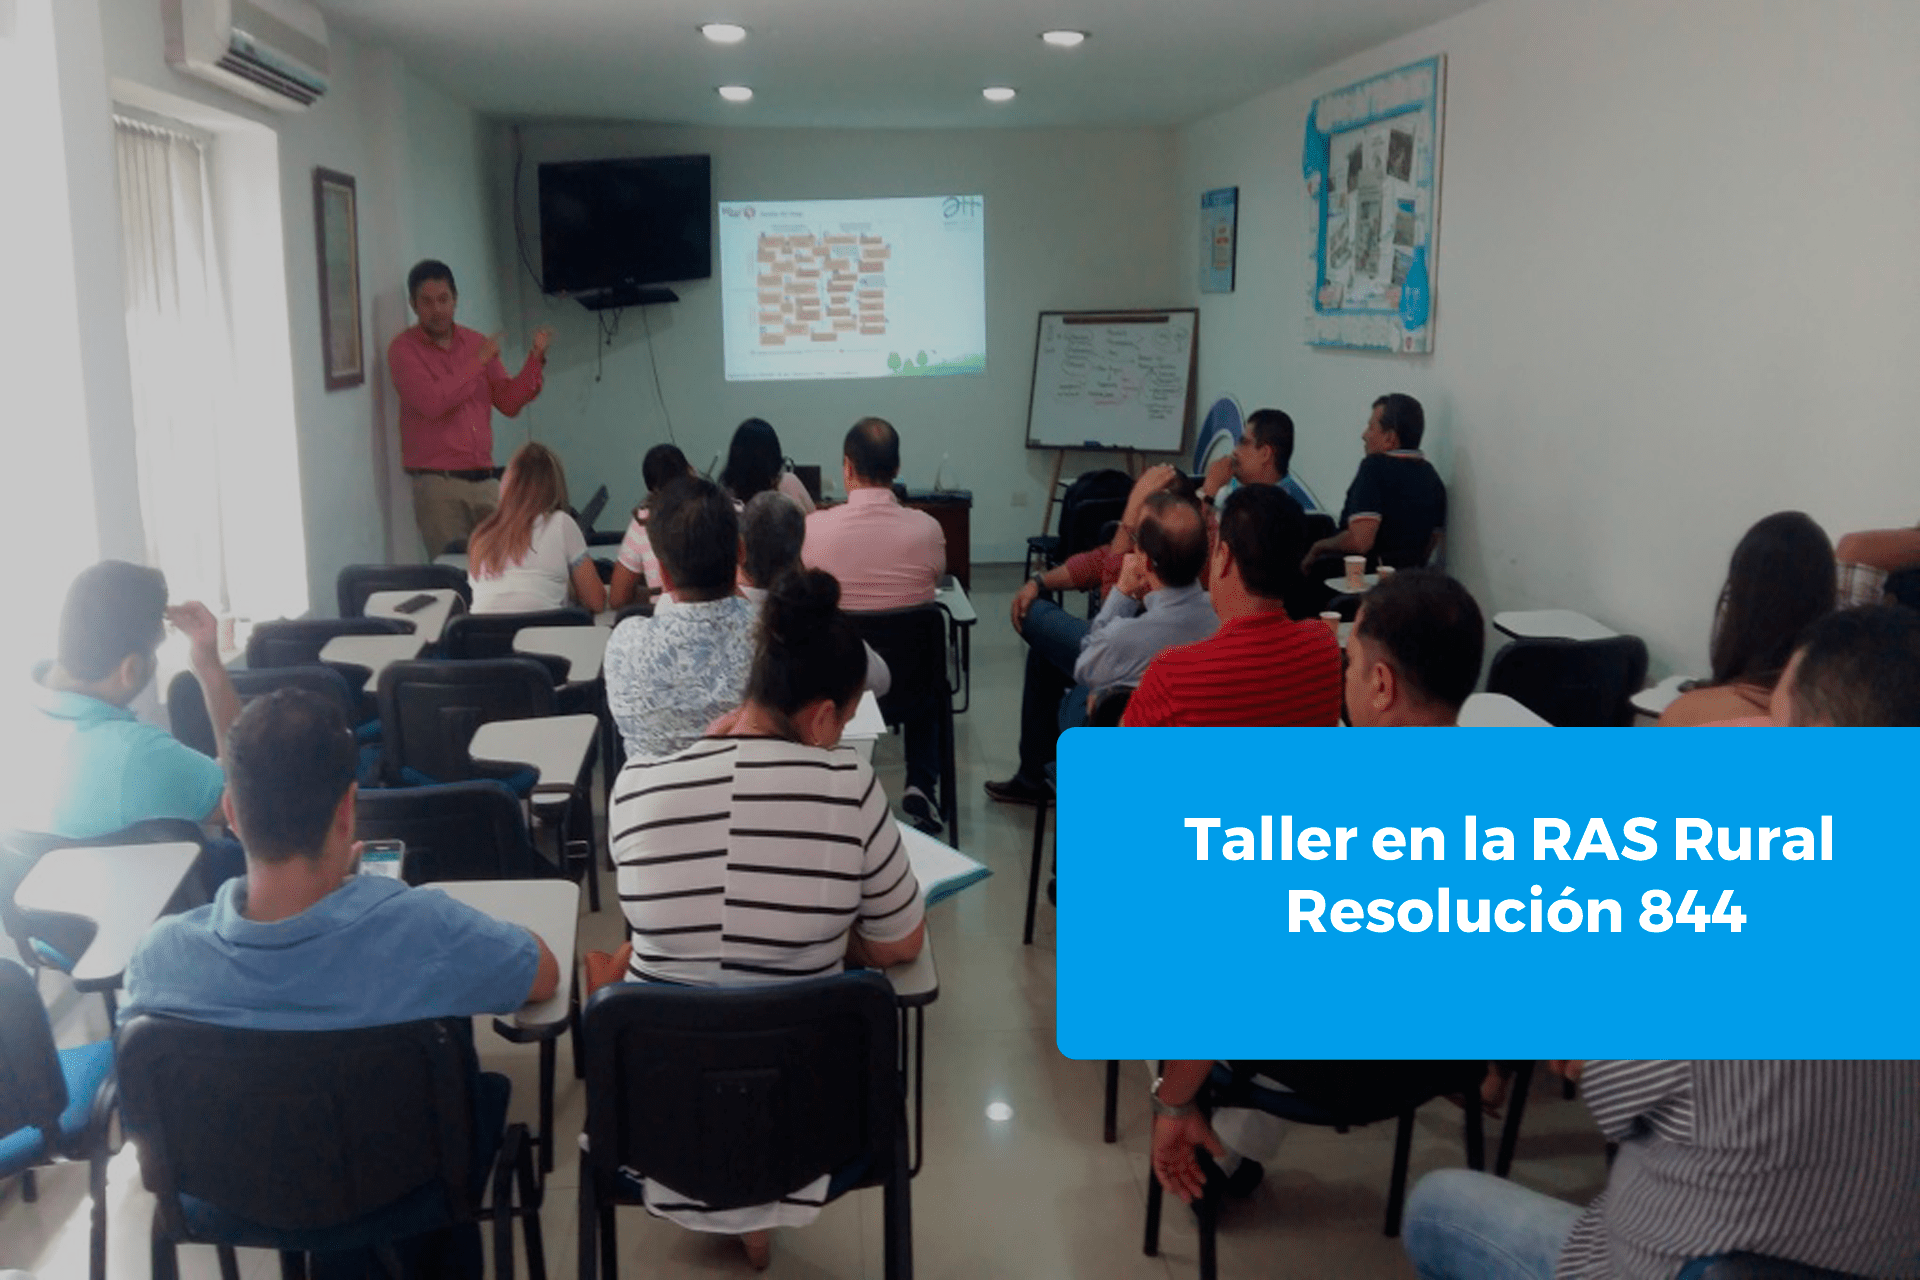 Taller en la RAS Rural – Resolución 844 de 2018